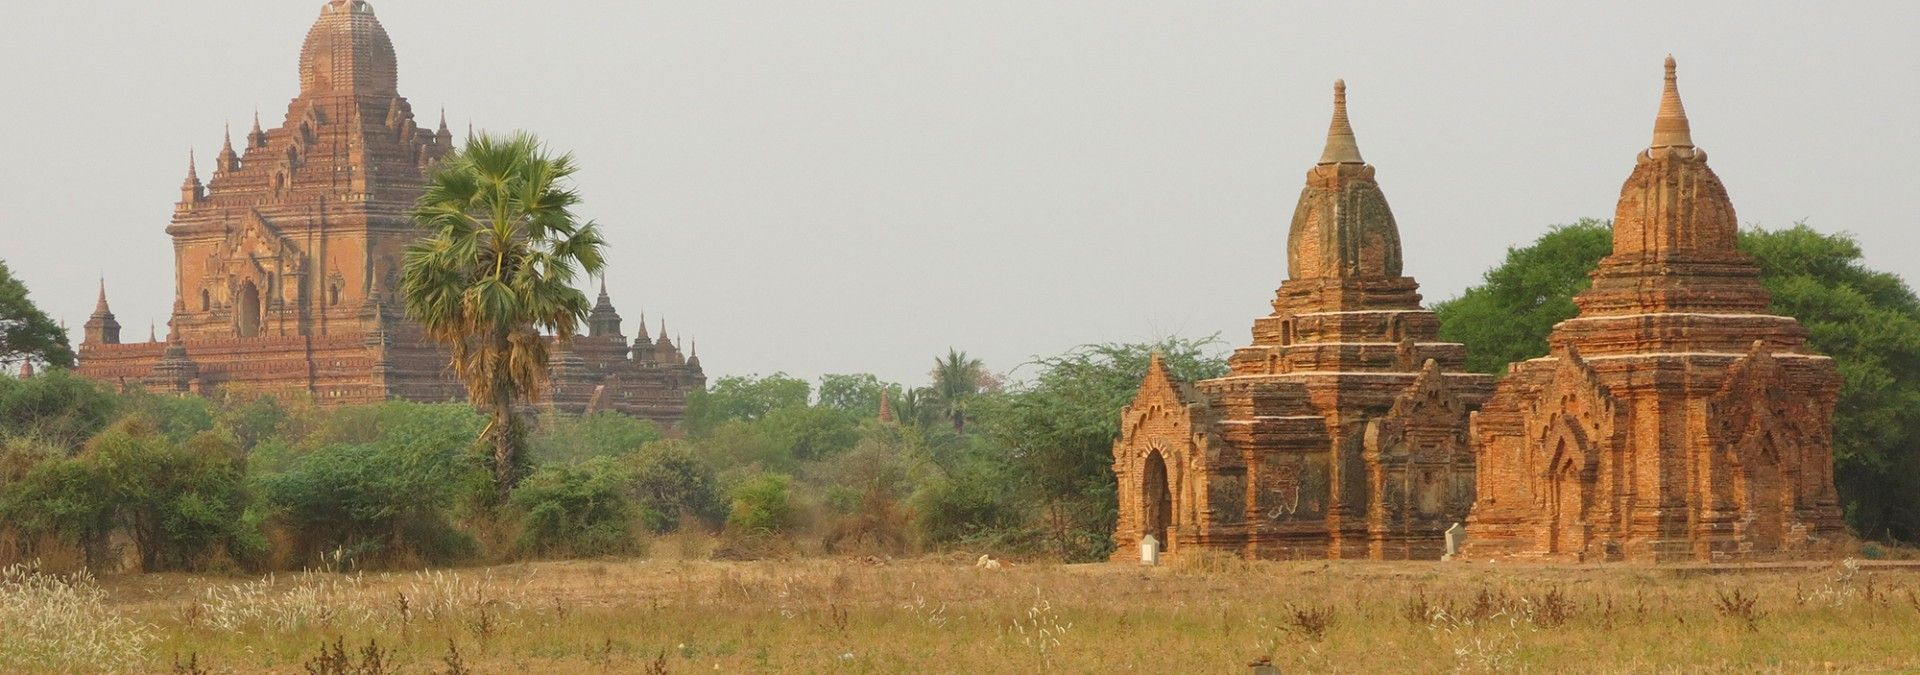 Ancient_city_of_Bagan_Burma_Myanmar.jpg